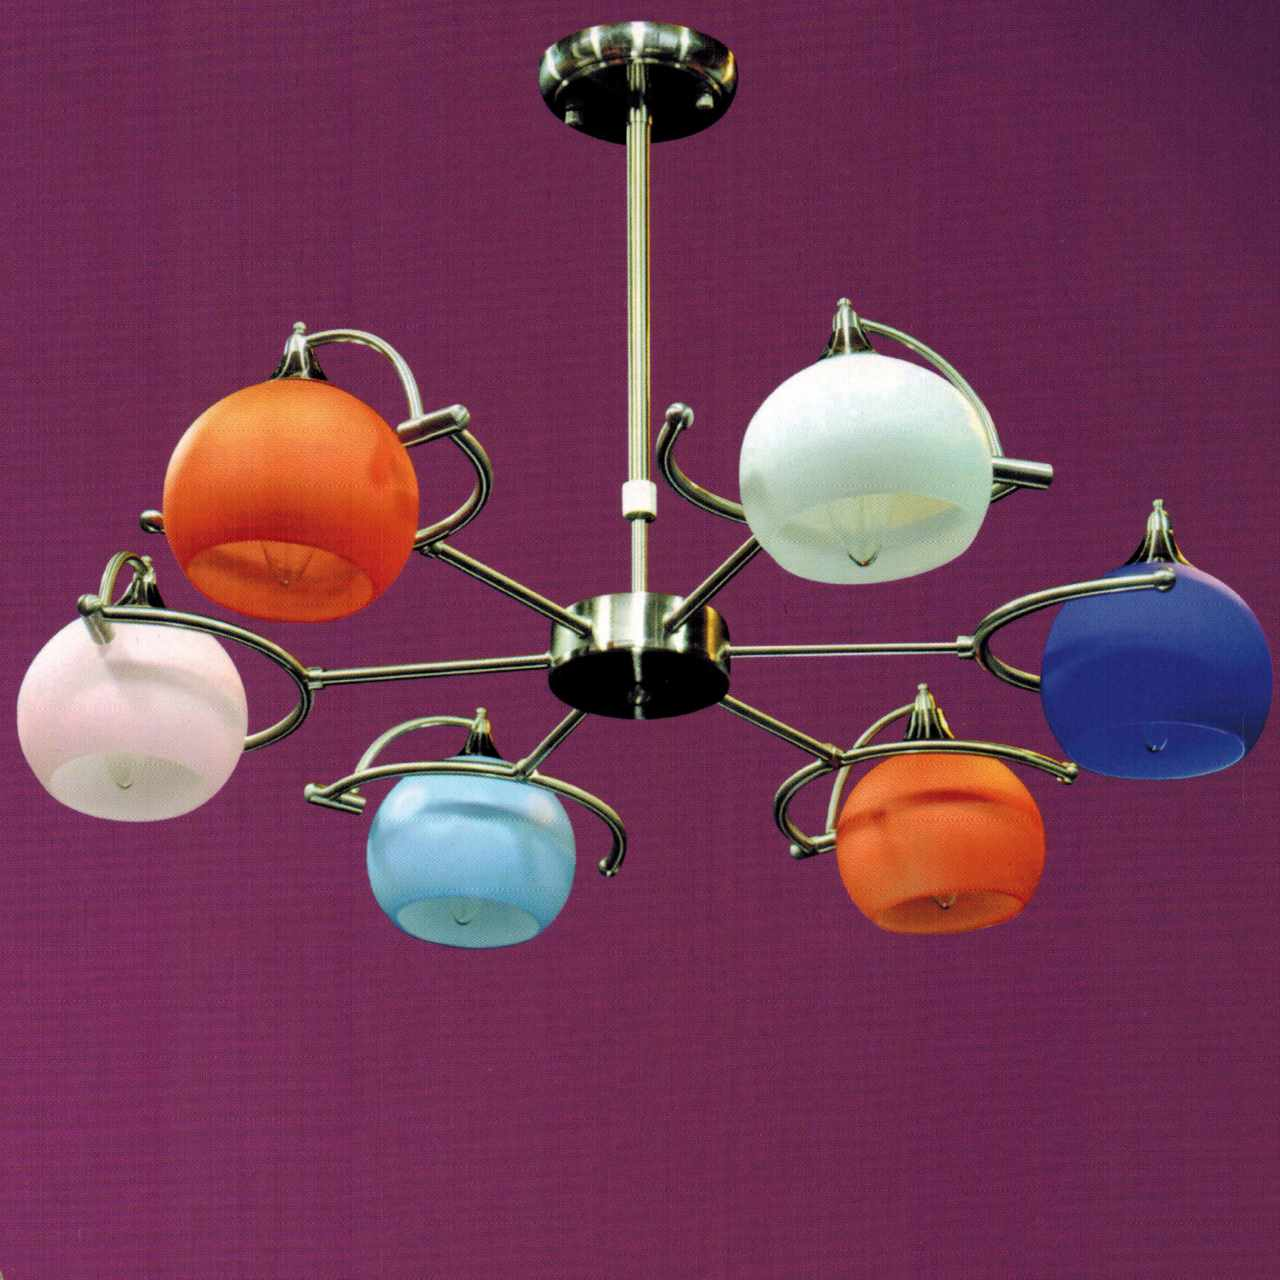 Brizzo lighting stores 28 vibrante modern round kids chandelier picture of 28 vibrante modern round kids chandelier brushed nickel white orange pink arubaitofo Images